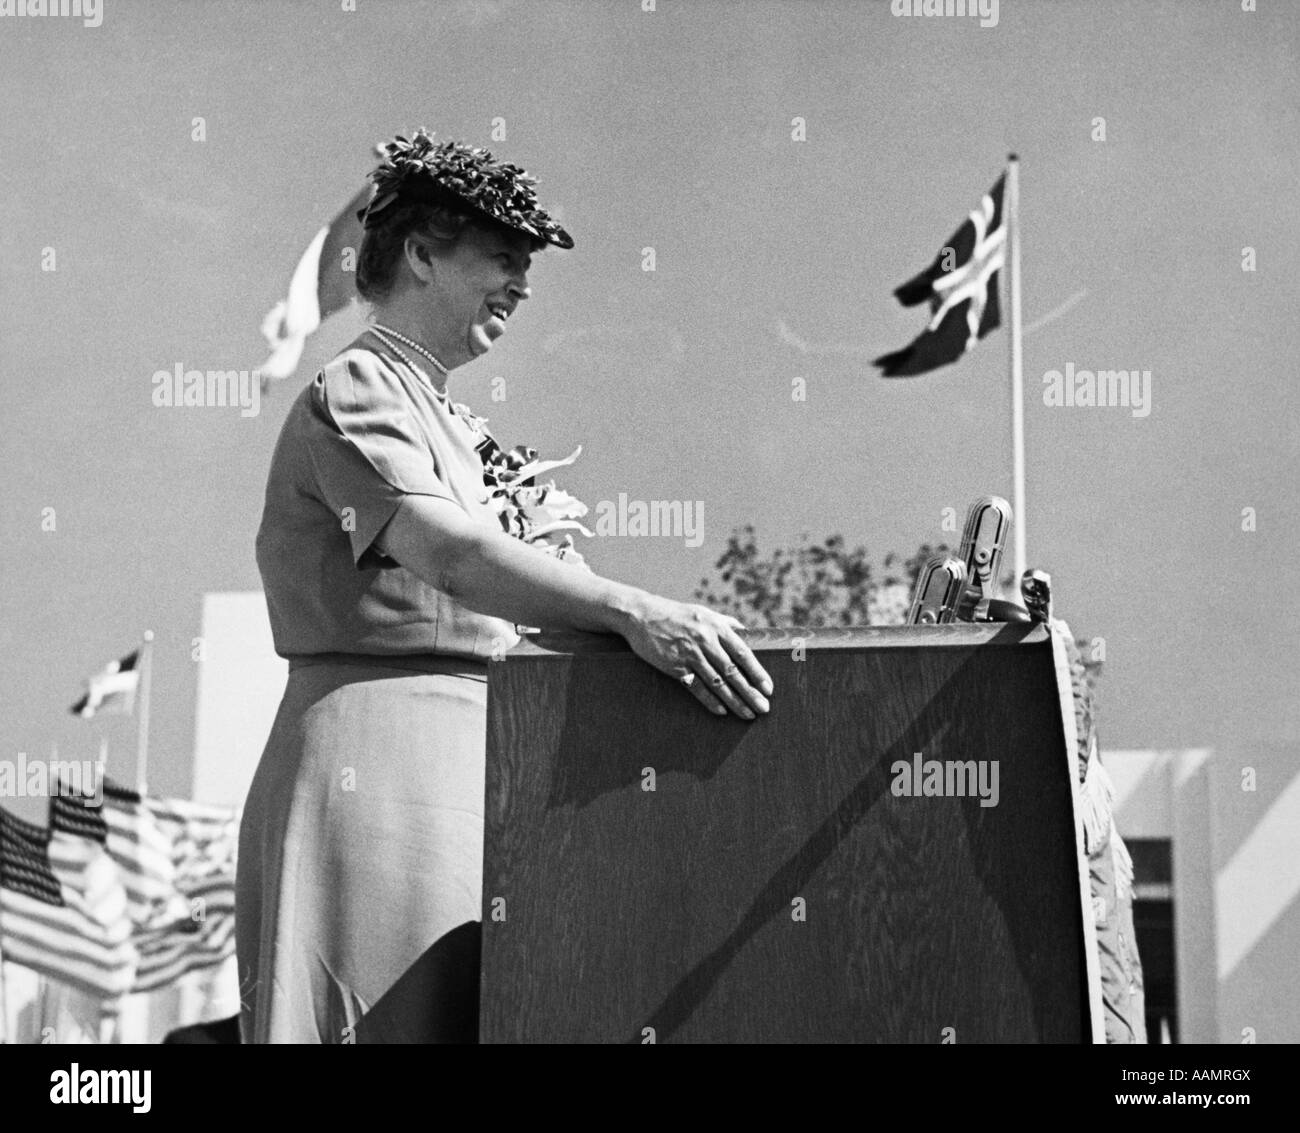 1930s FIRST LADY ELEANOR ROOSEVELT STANDING AT A PODIUM AT THE NEW YORK WORLD'S FAIR PUBLIC SPEAKING - Stock Image